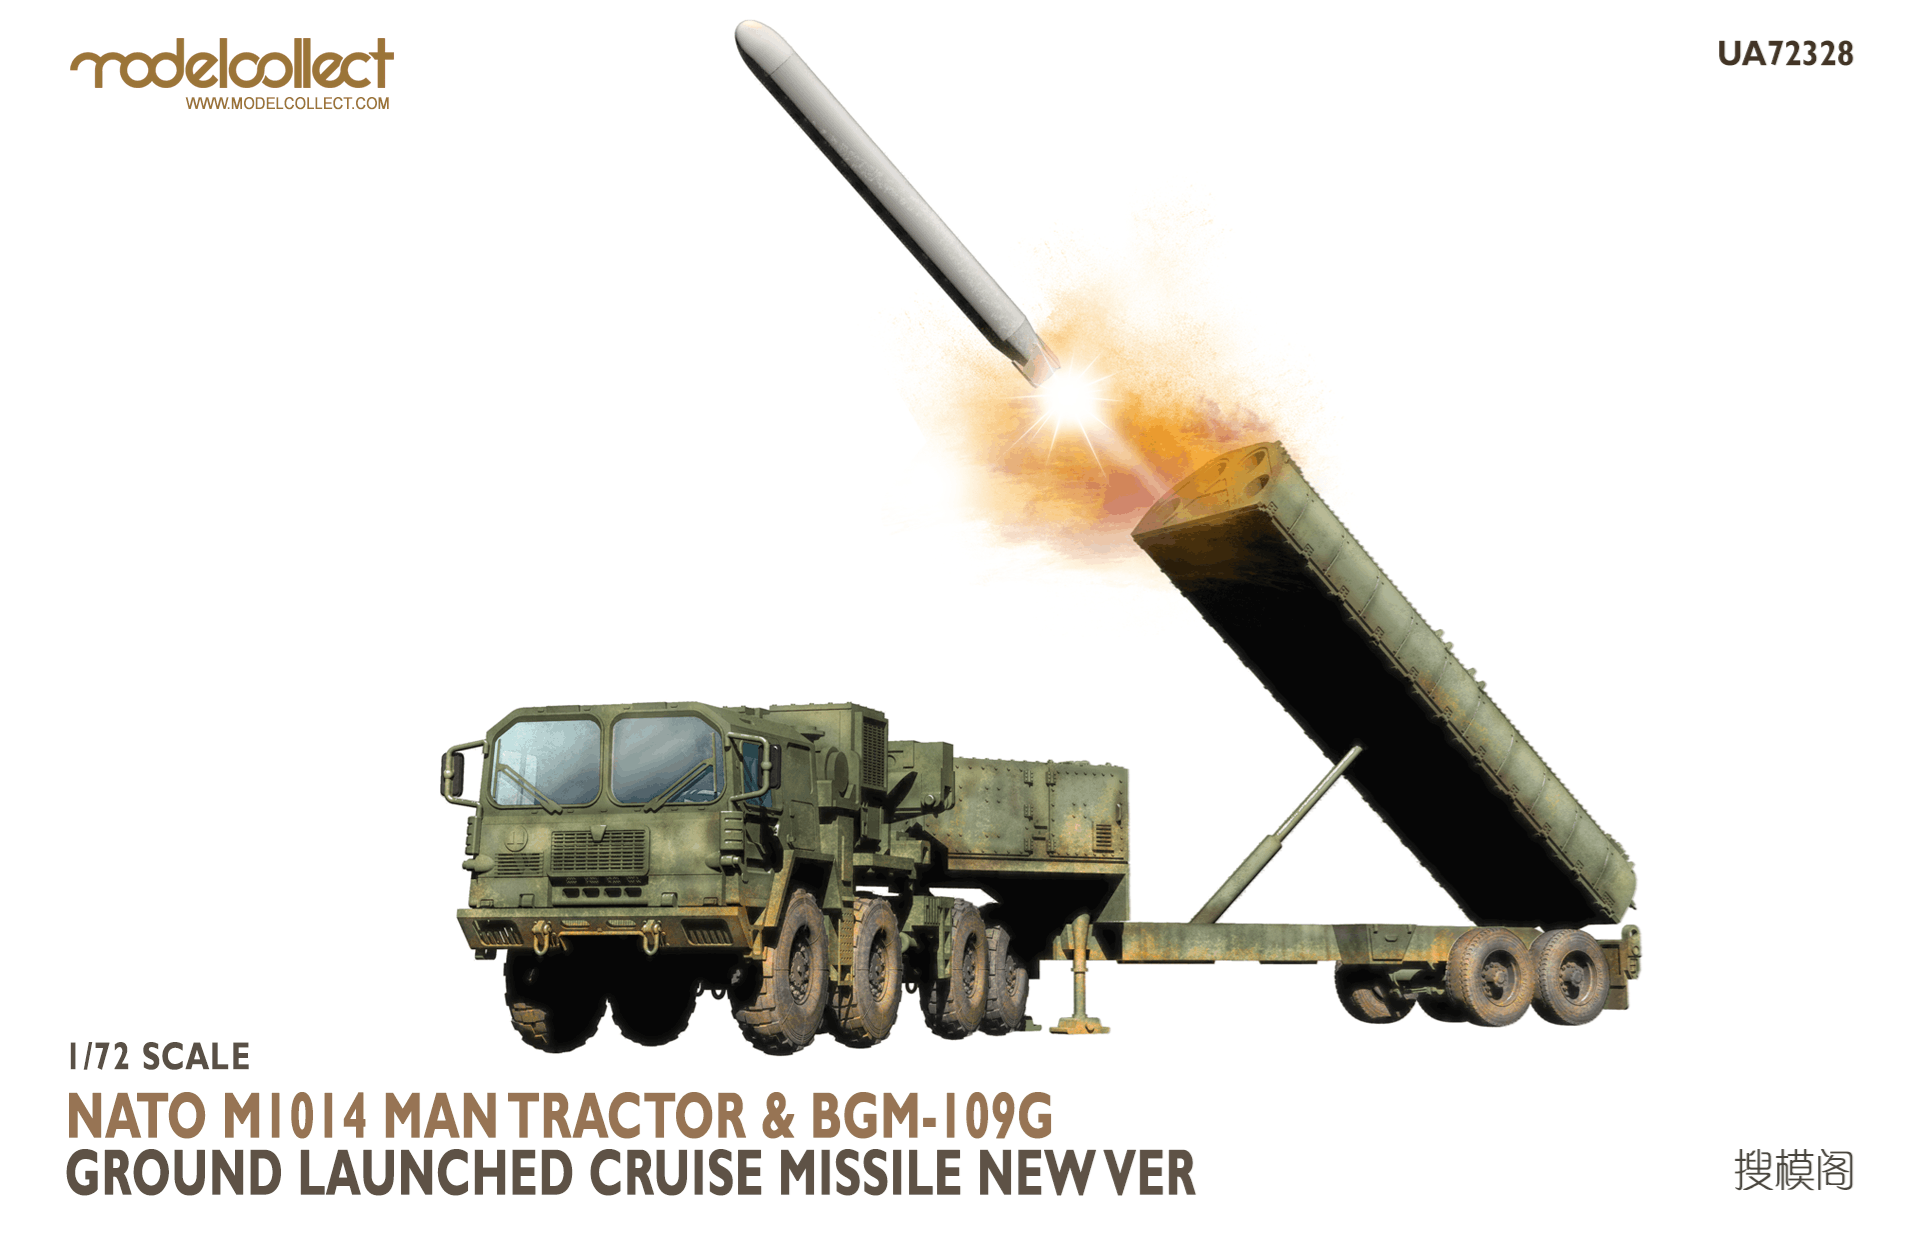 ModelCollect Nato M1014 MAN Tractor & BGM-109G Ground Launched Cruise Missile new Ver